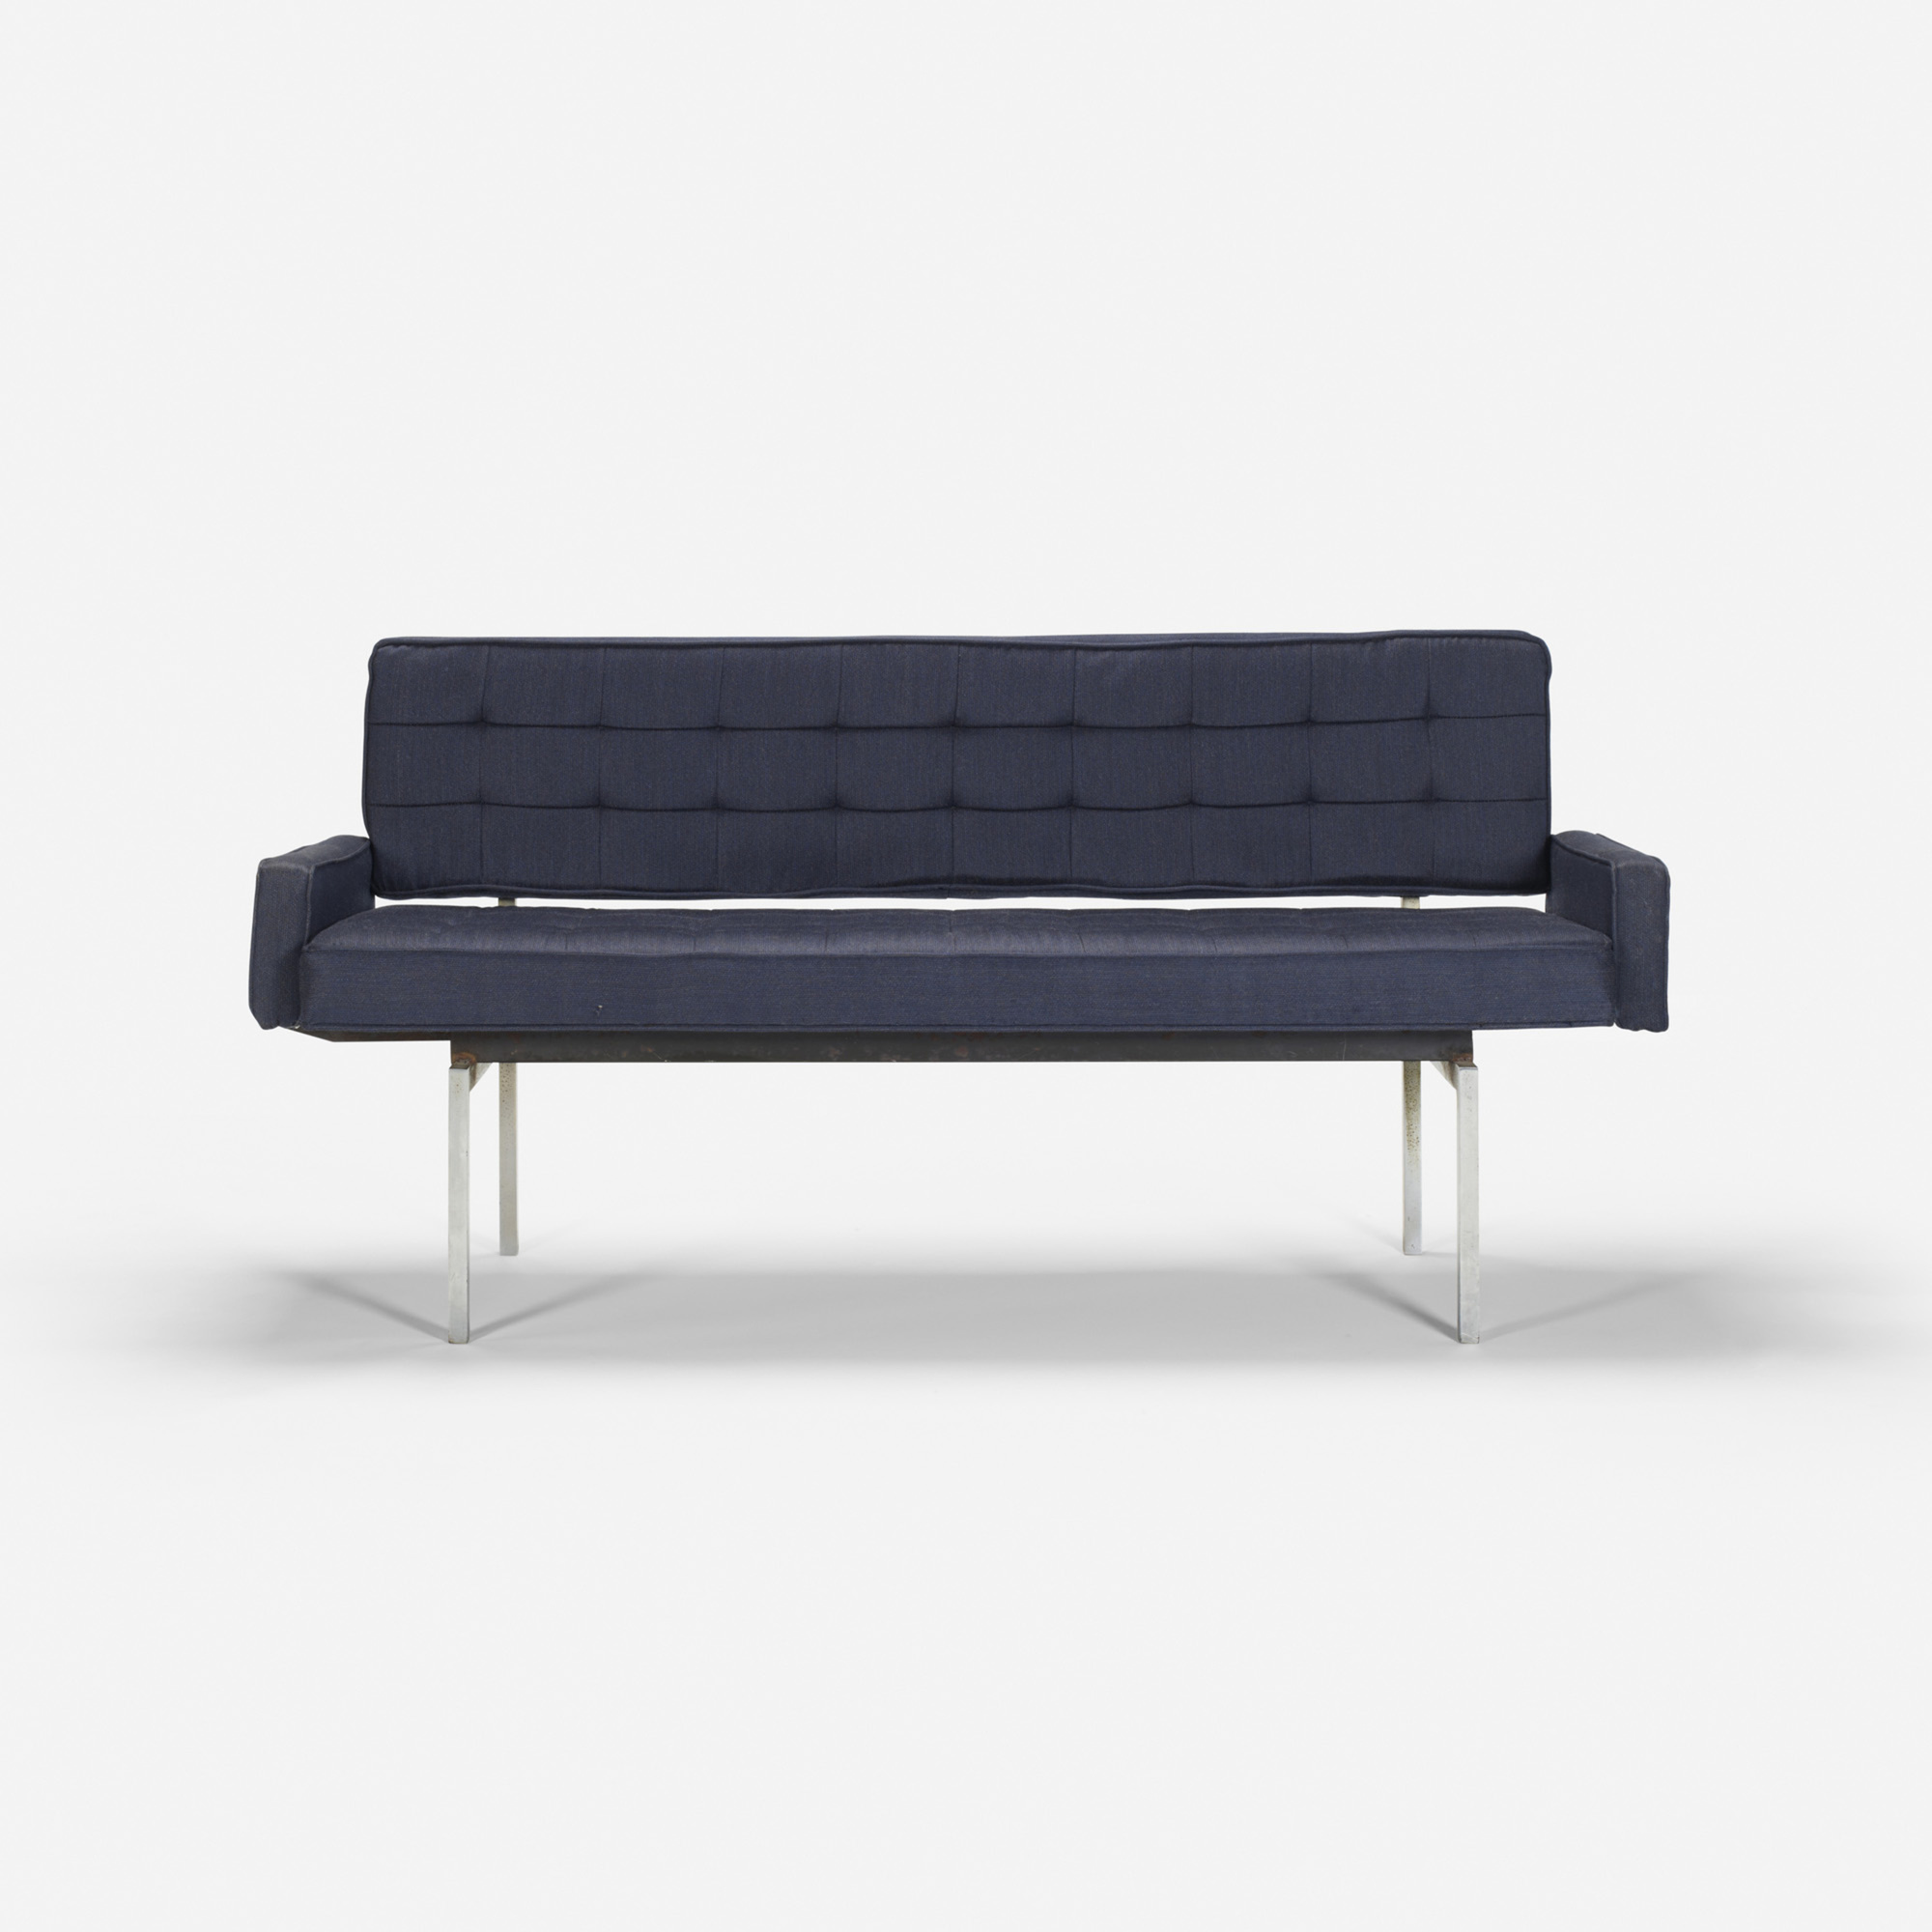 517: Philip Johnson Associates / Banquette 87 from the Pool Room (1 of 1)